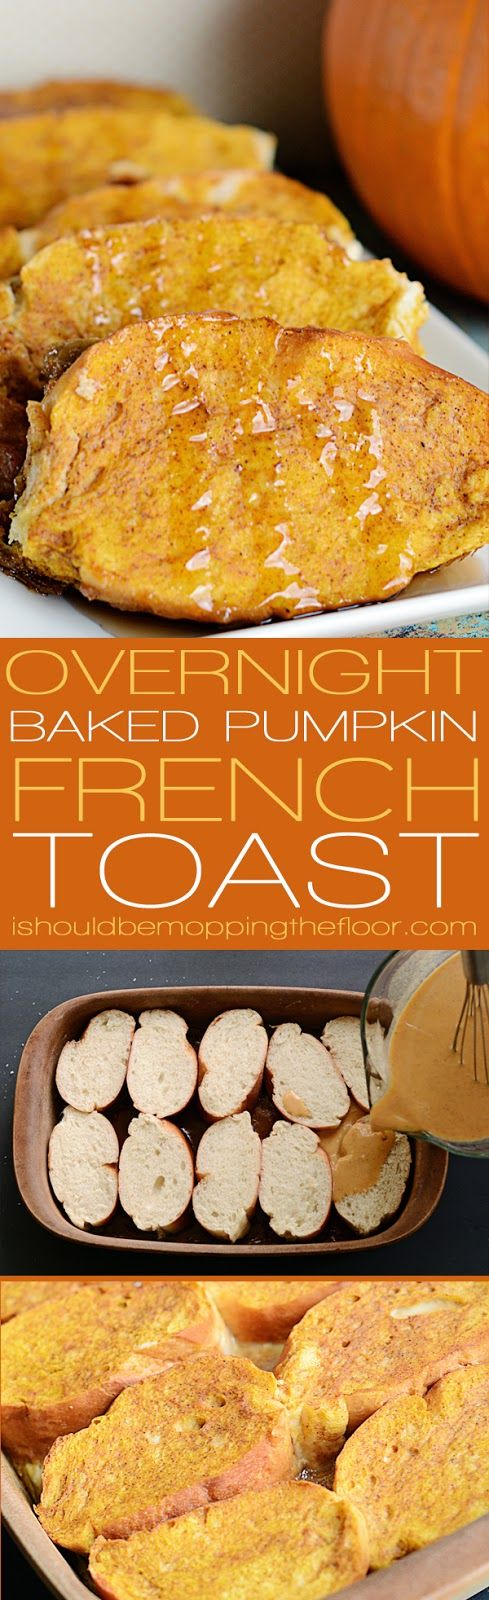 Overnight Baked Pumpkin French Toast: once you try this overnight French toast recipe, you'll always fix it. The bottom layer forms its own rich and delicious syrup. #GoldRichYolk